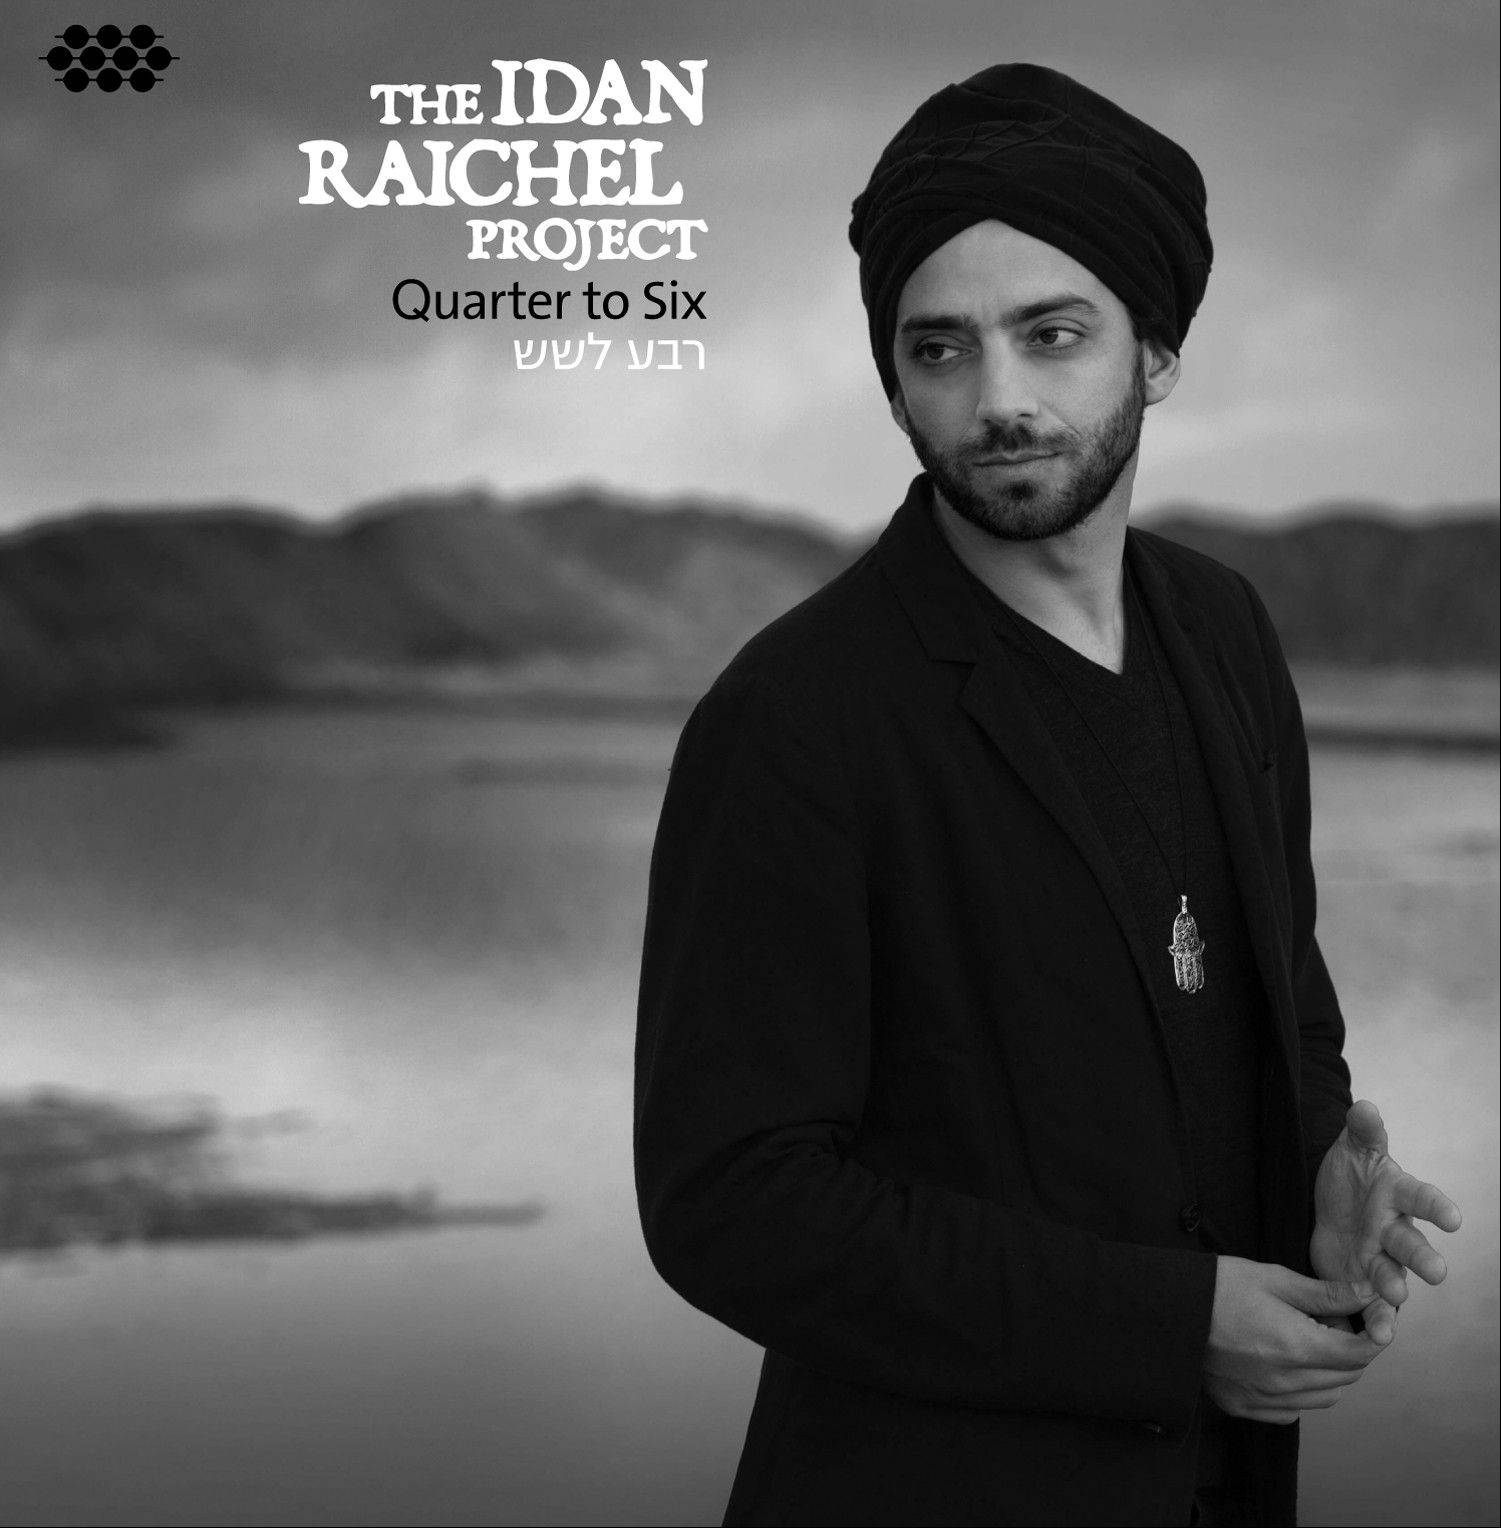 """Quarter to Six,"" the latest release by The Idan Raichel Project"